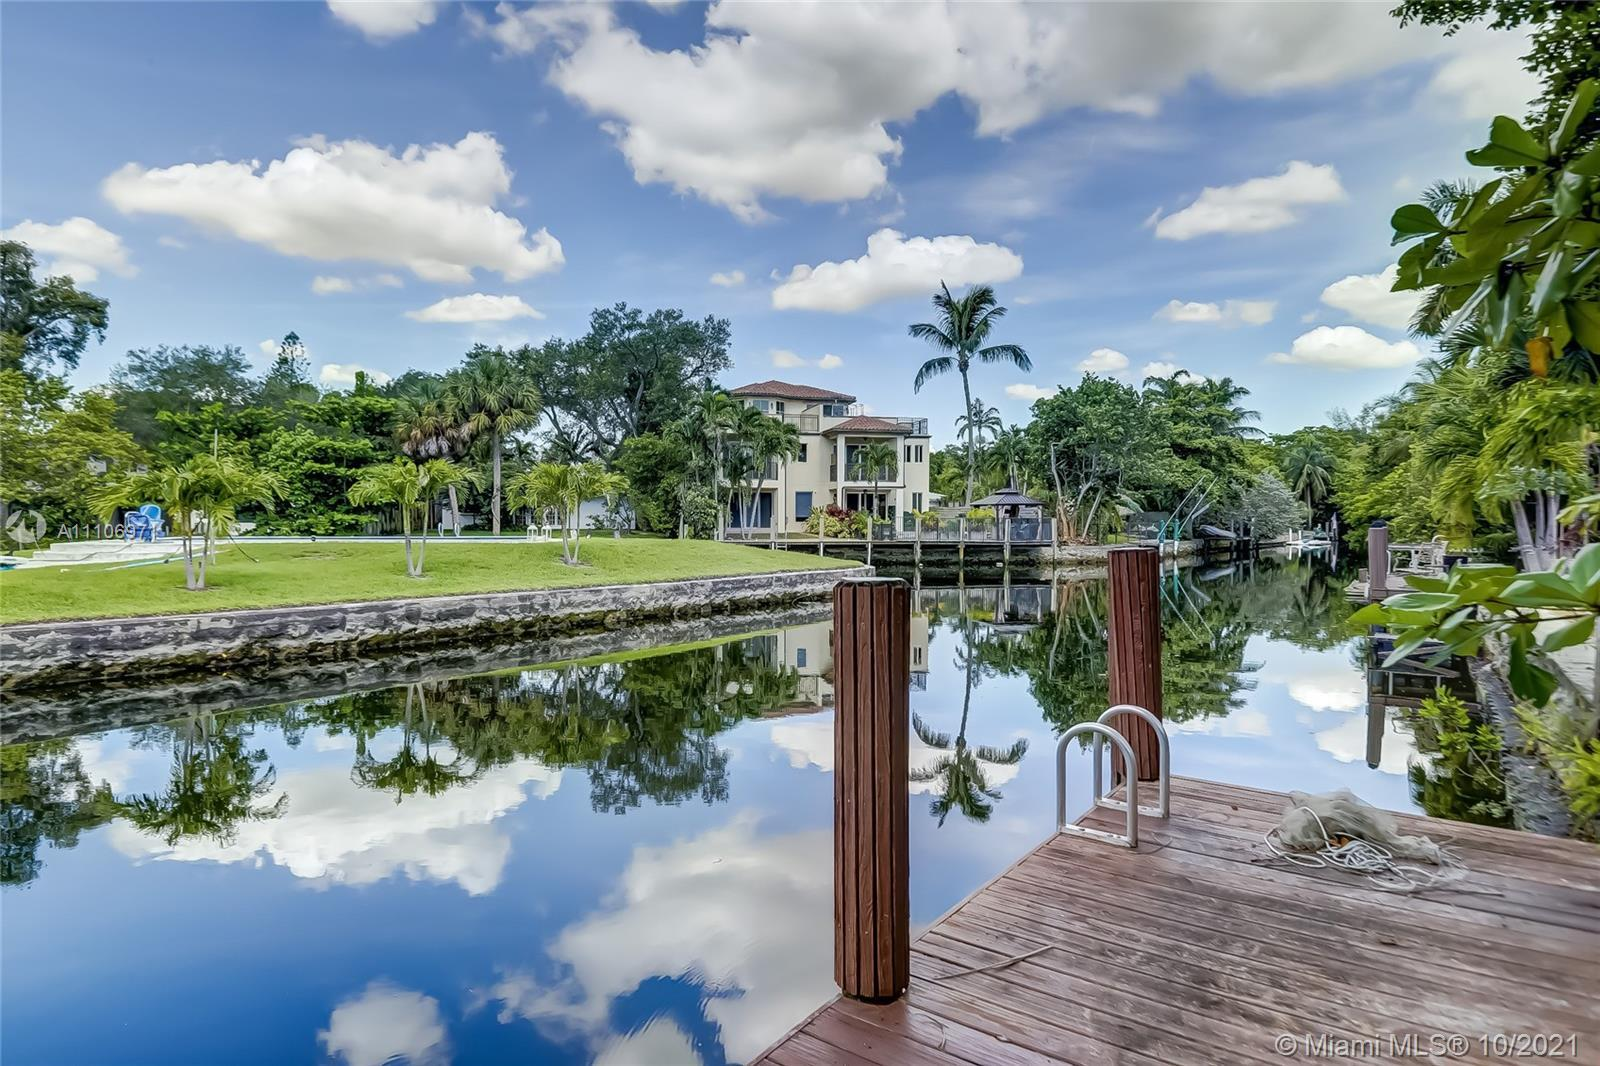 TRANQUIL WATERFRONT LOCATION ON THE TARPON RIVER.  Four bedroom, three bath, single family home situ